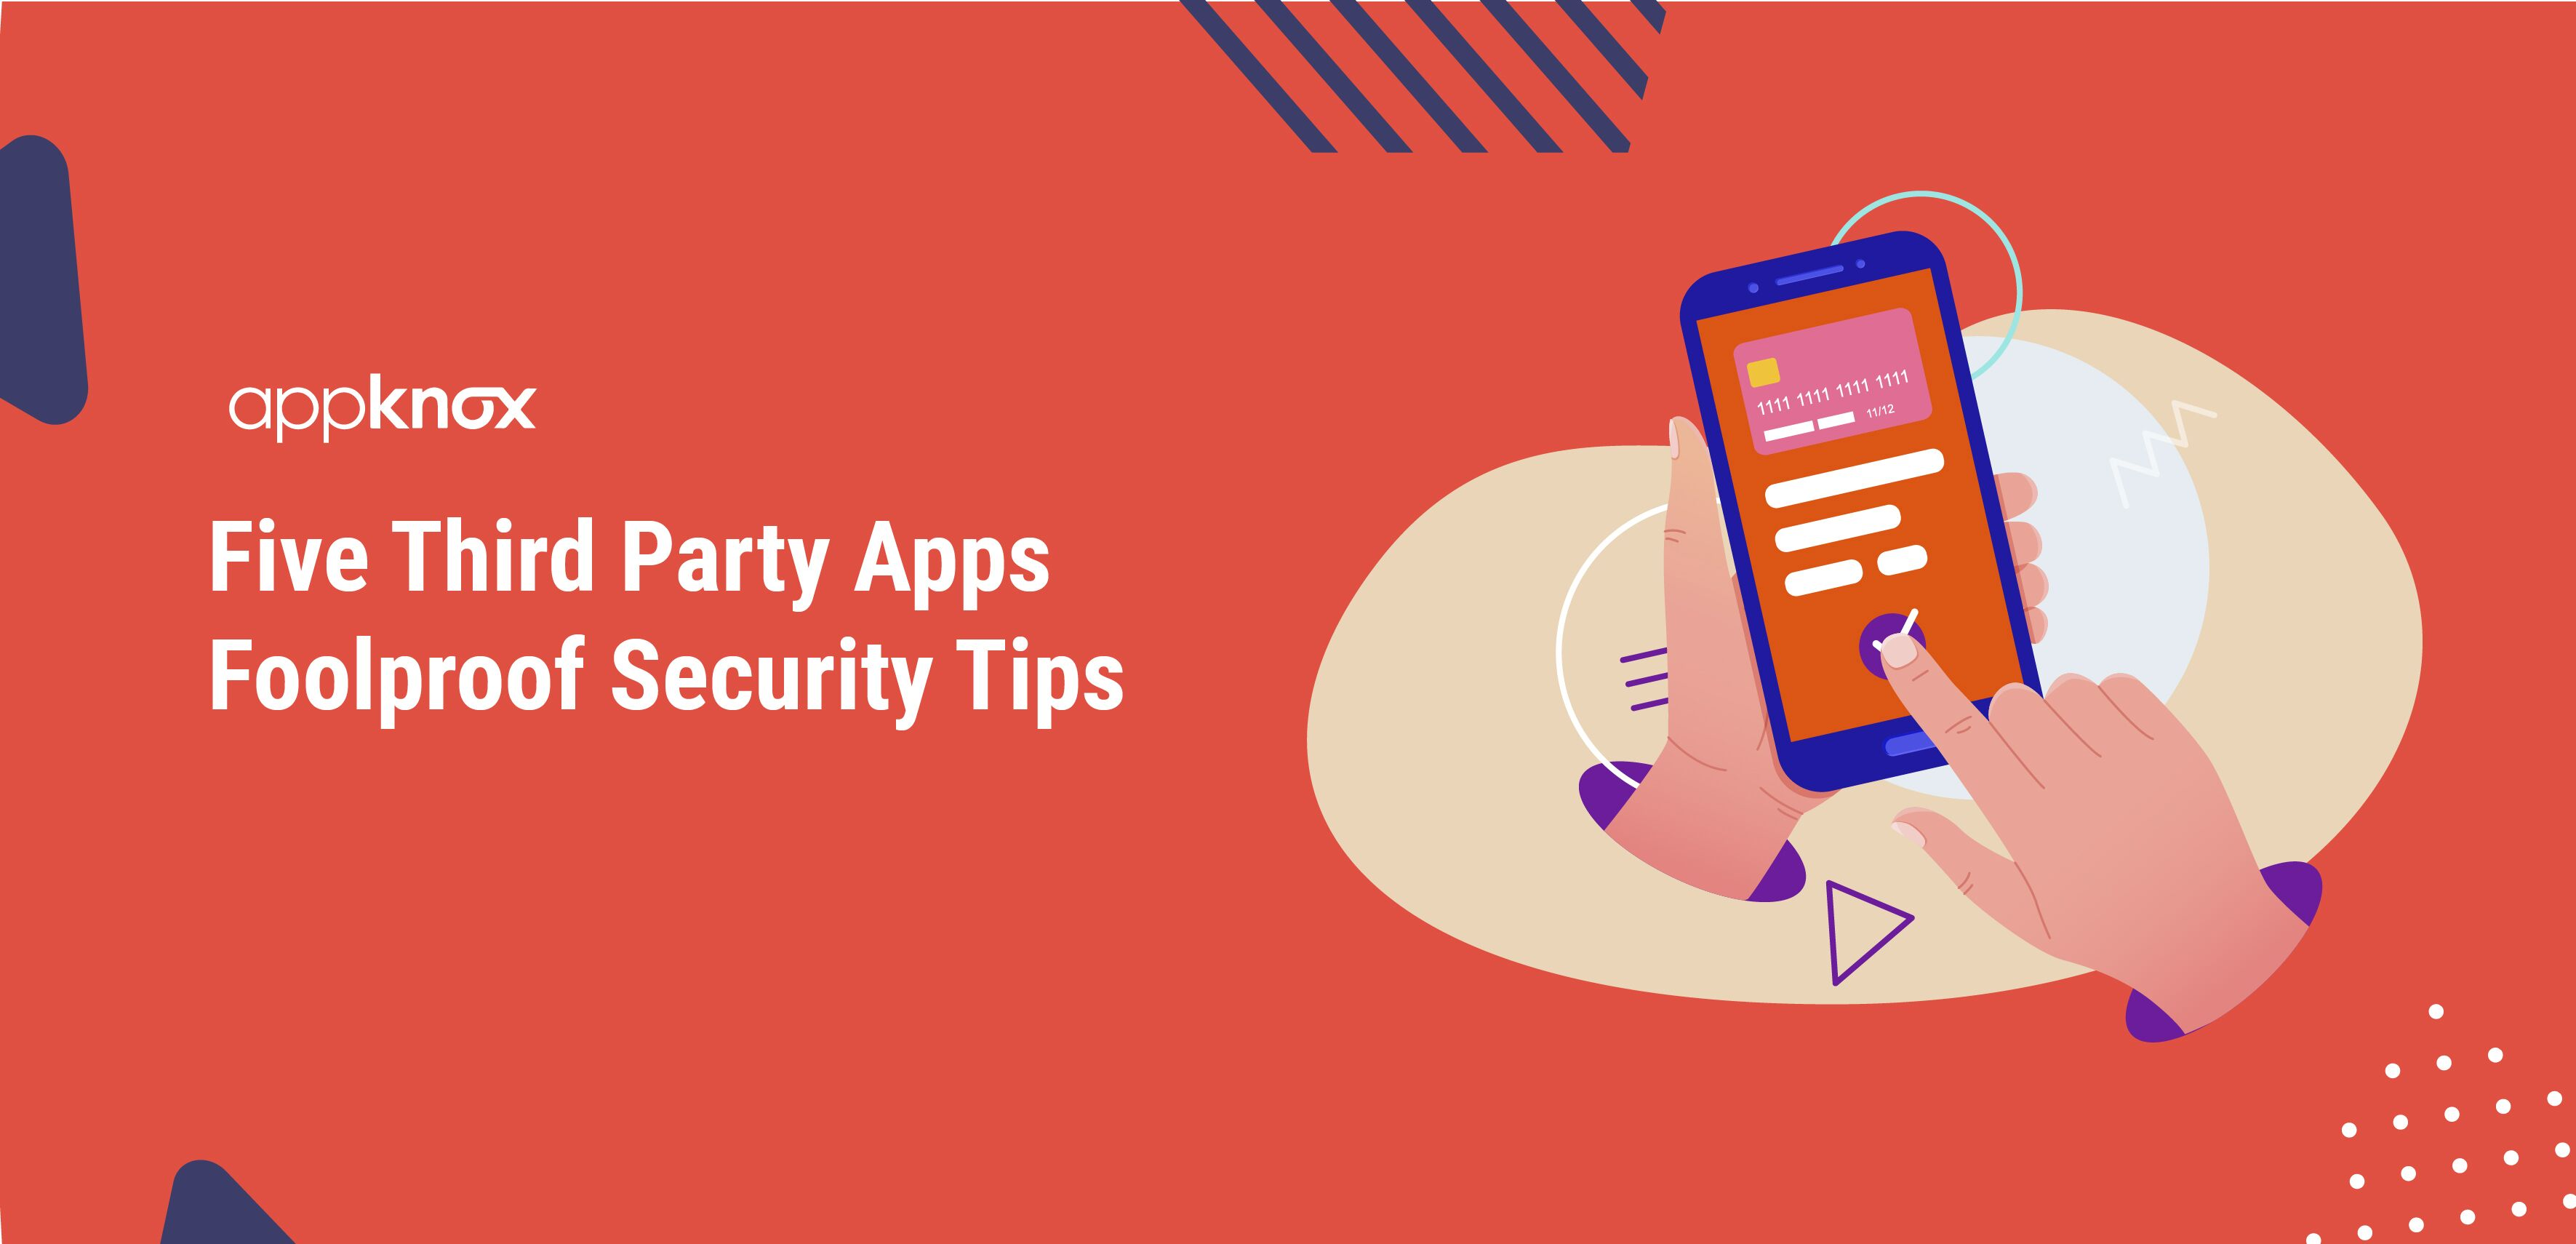 Five Third Party Apps Foolproof Security Tips